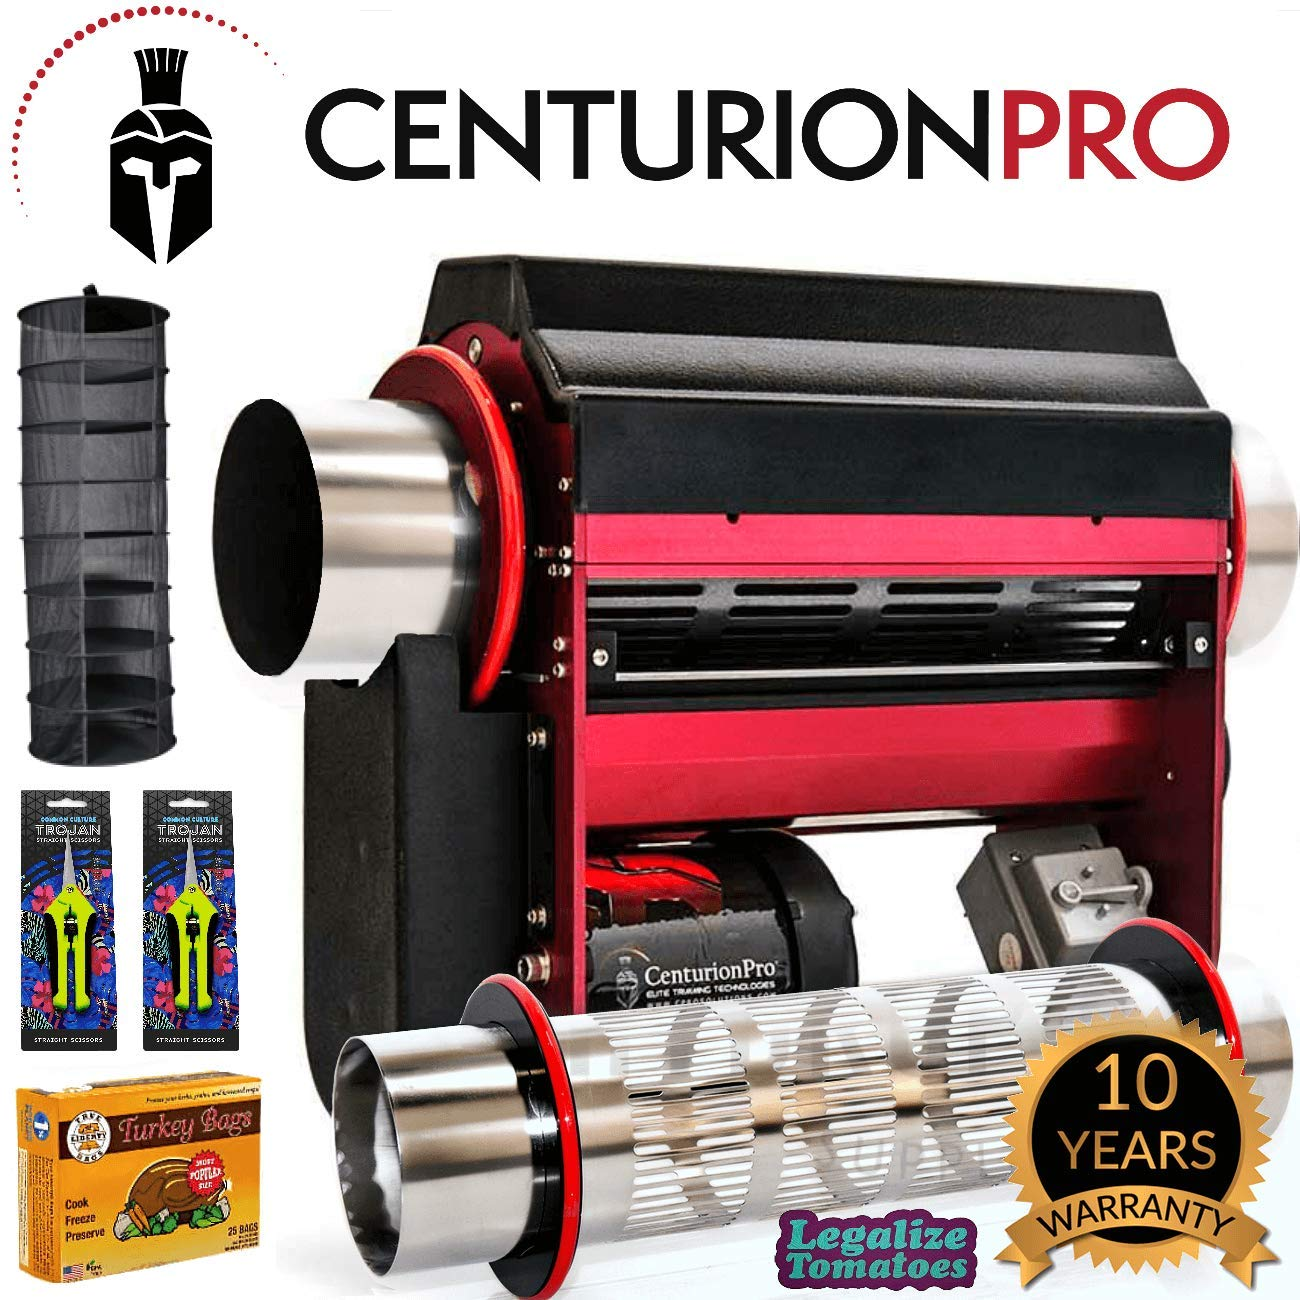 Centurion Pro Tabletop Trimmer with 2 Electropolished Tumblers Wet and Dry - Includes 2x Common Culture Trimming Scissors, Turkey Bags and Accessories (8 Items) by Centurion Pro